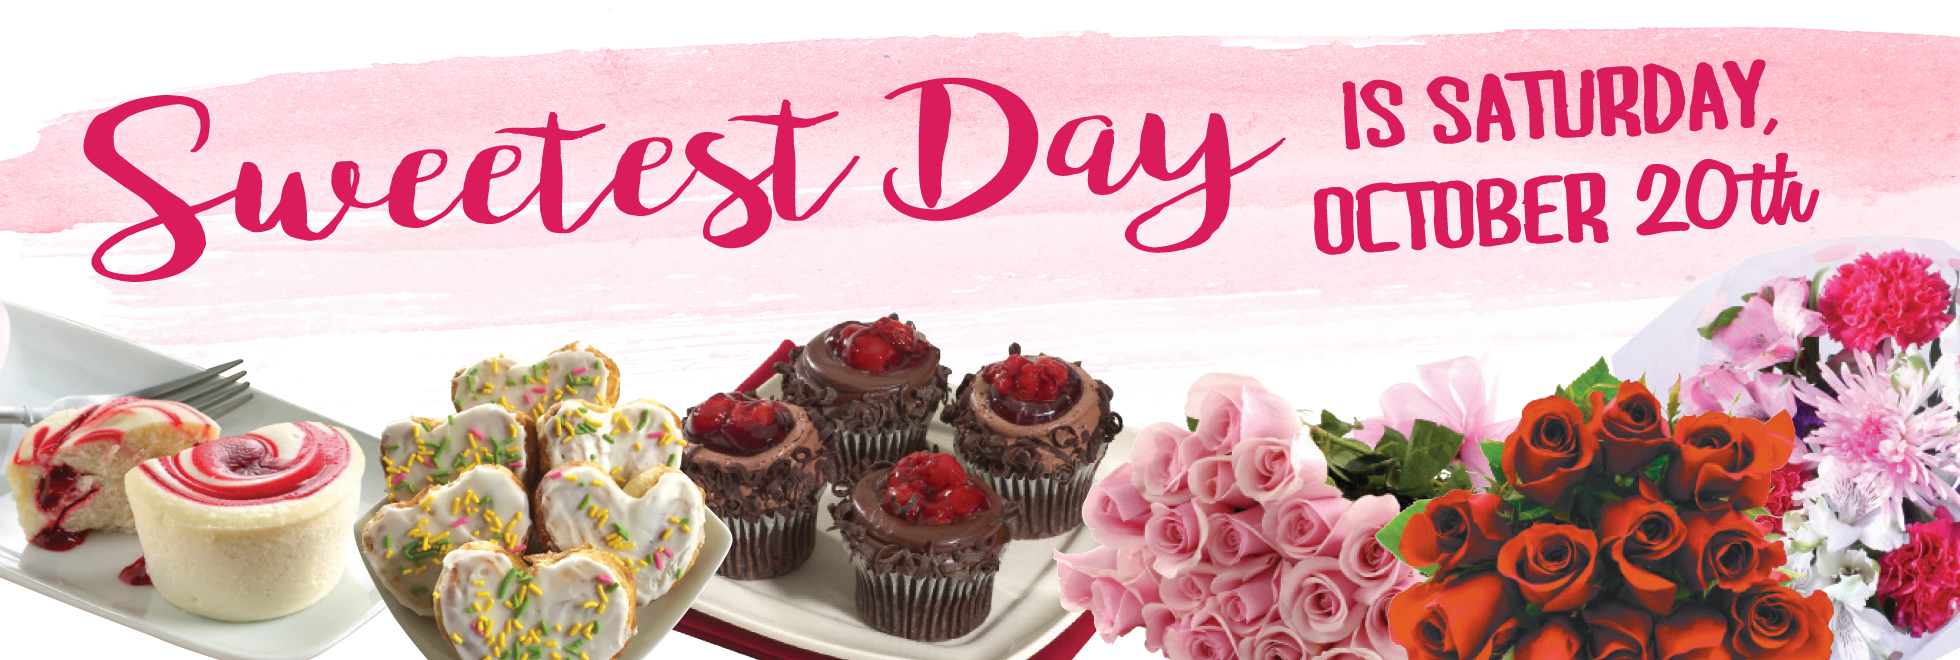 Sweetest Day is October 20th